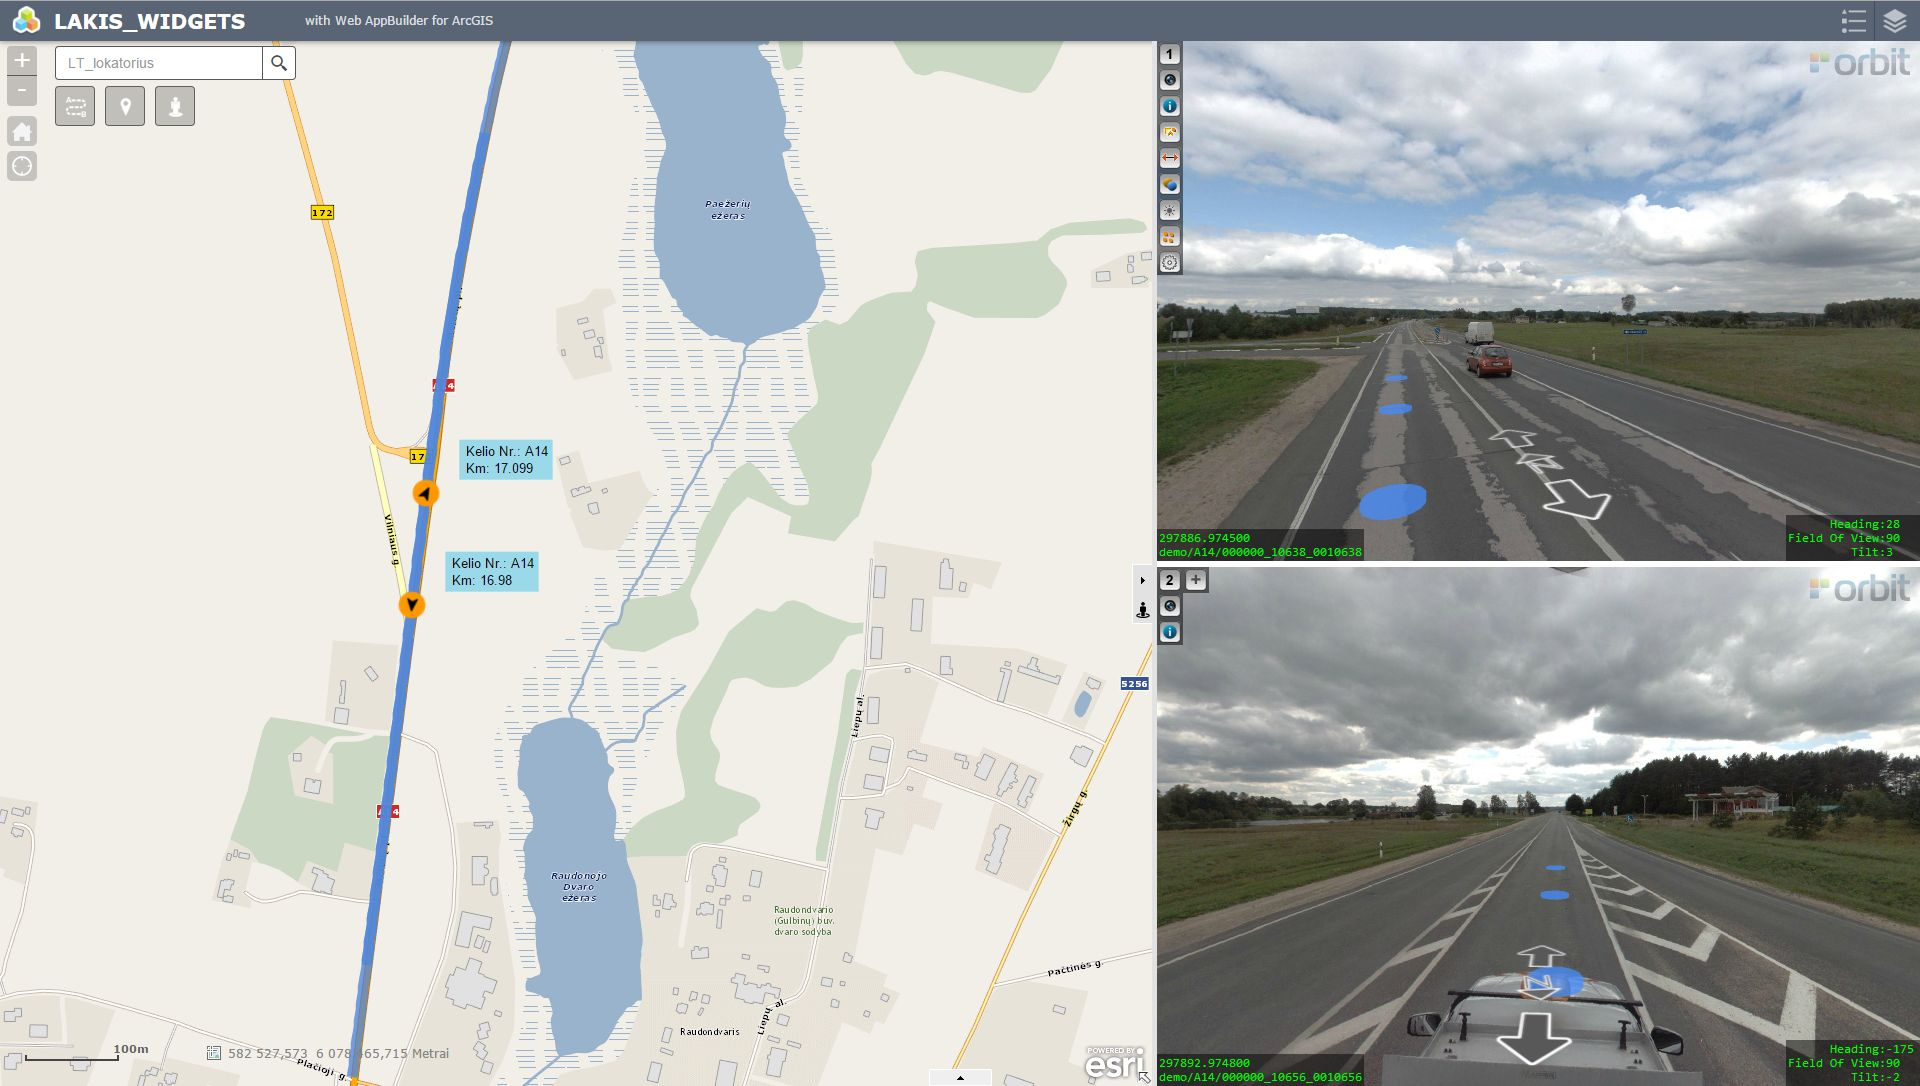 Orbit GT Mobile Mapping